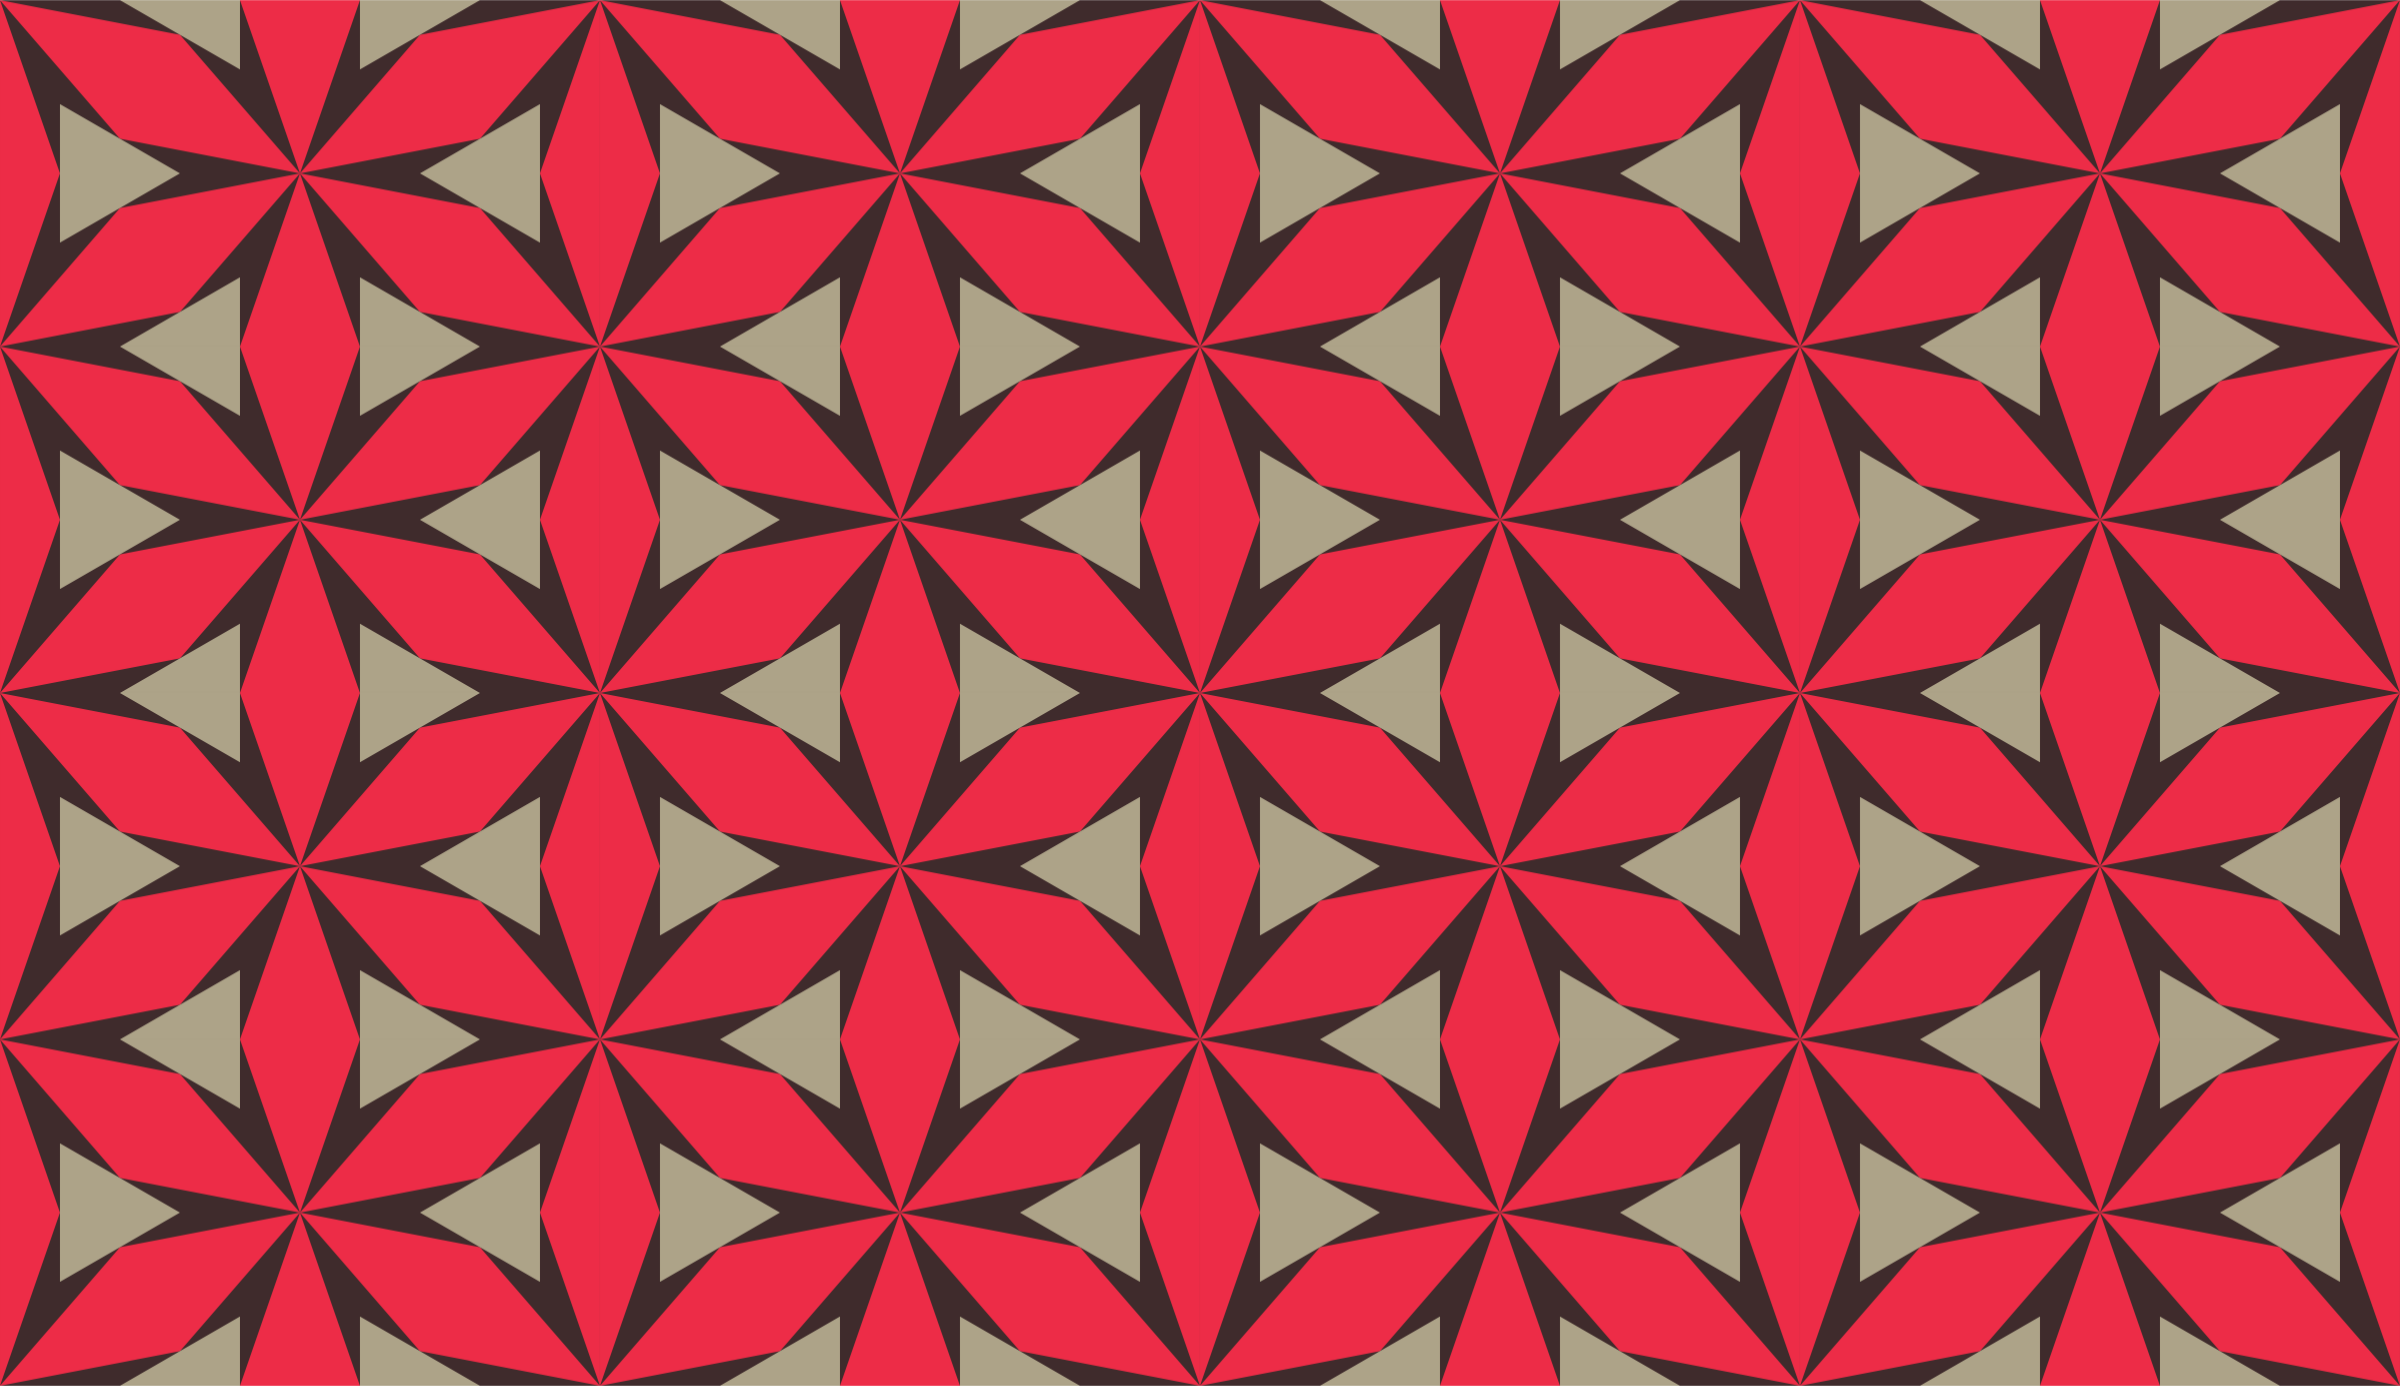 Tessellation 15 (colour 3) by Firkin